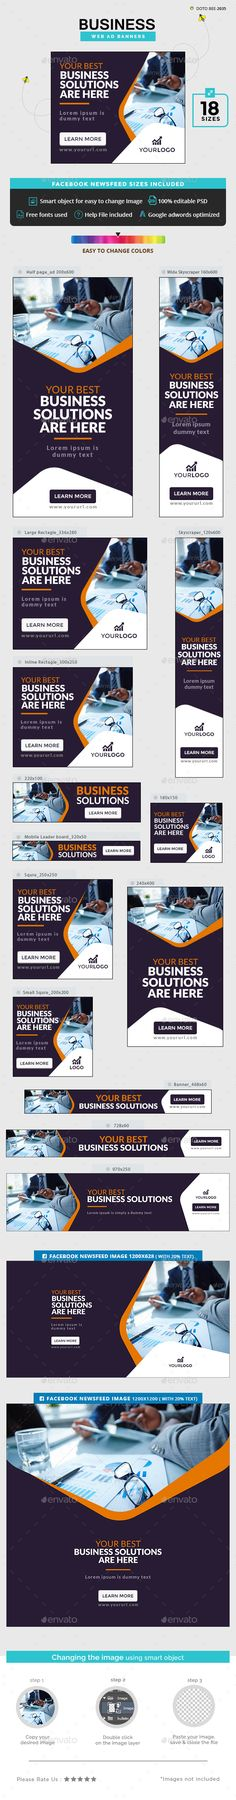 Business Banners - #Banners & Ads Web Elements Download here: https://graphicriver.net/item/business-banners/20016659?ref=alena994